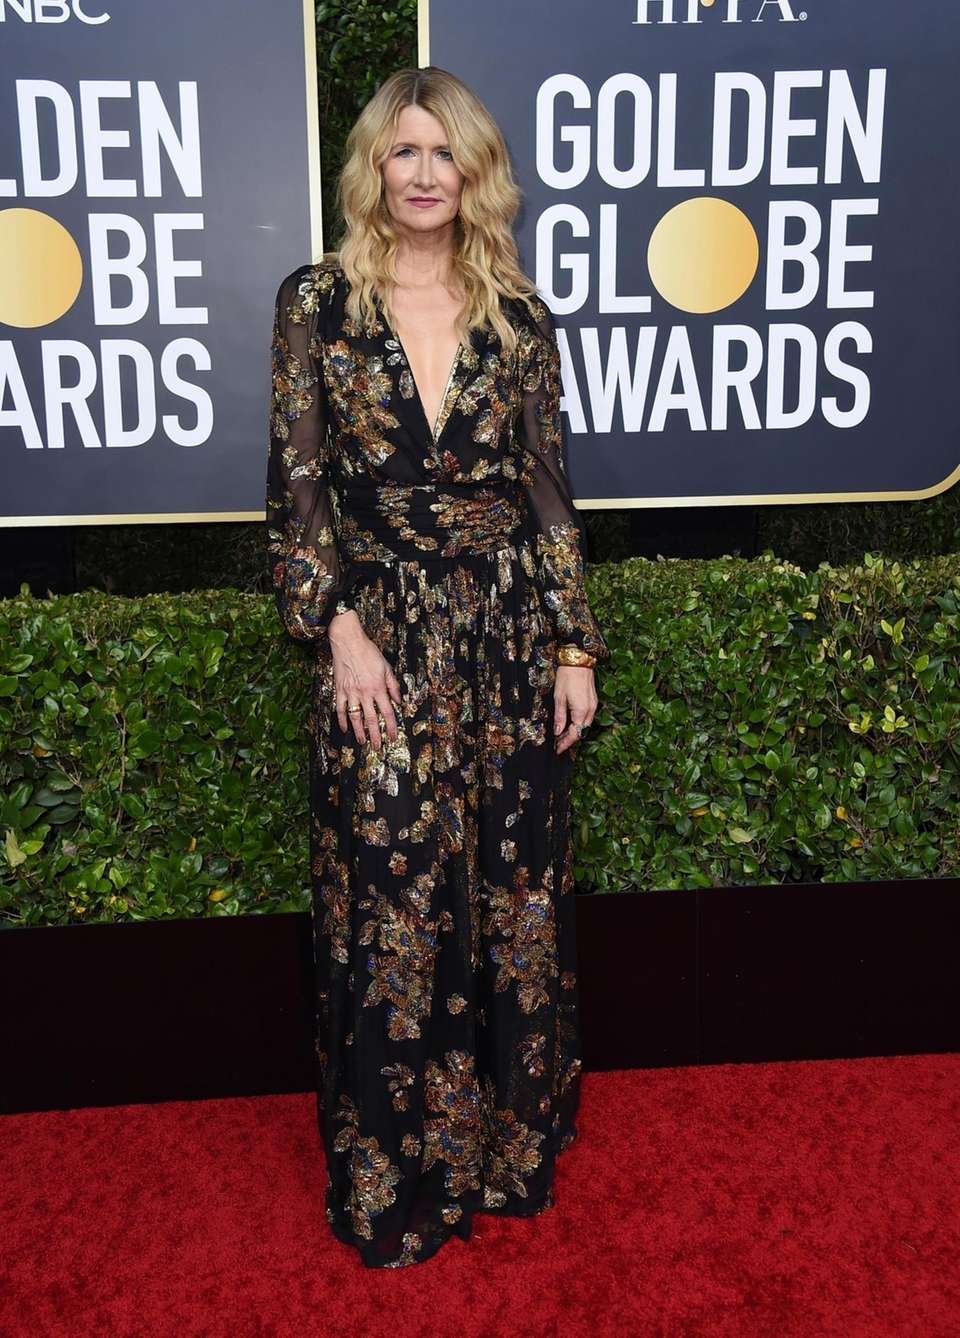 Laura Dern arrives at the 77th annual Golden